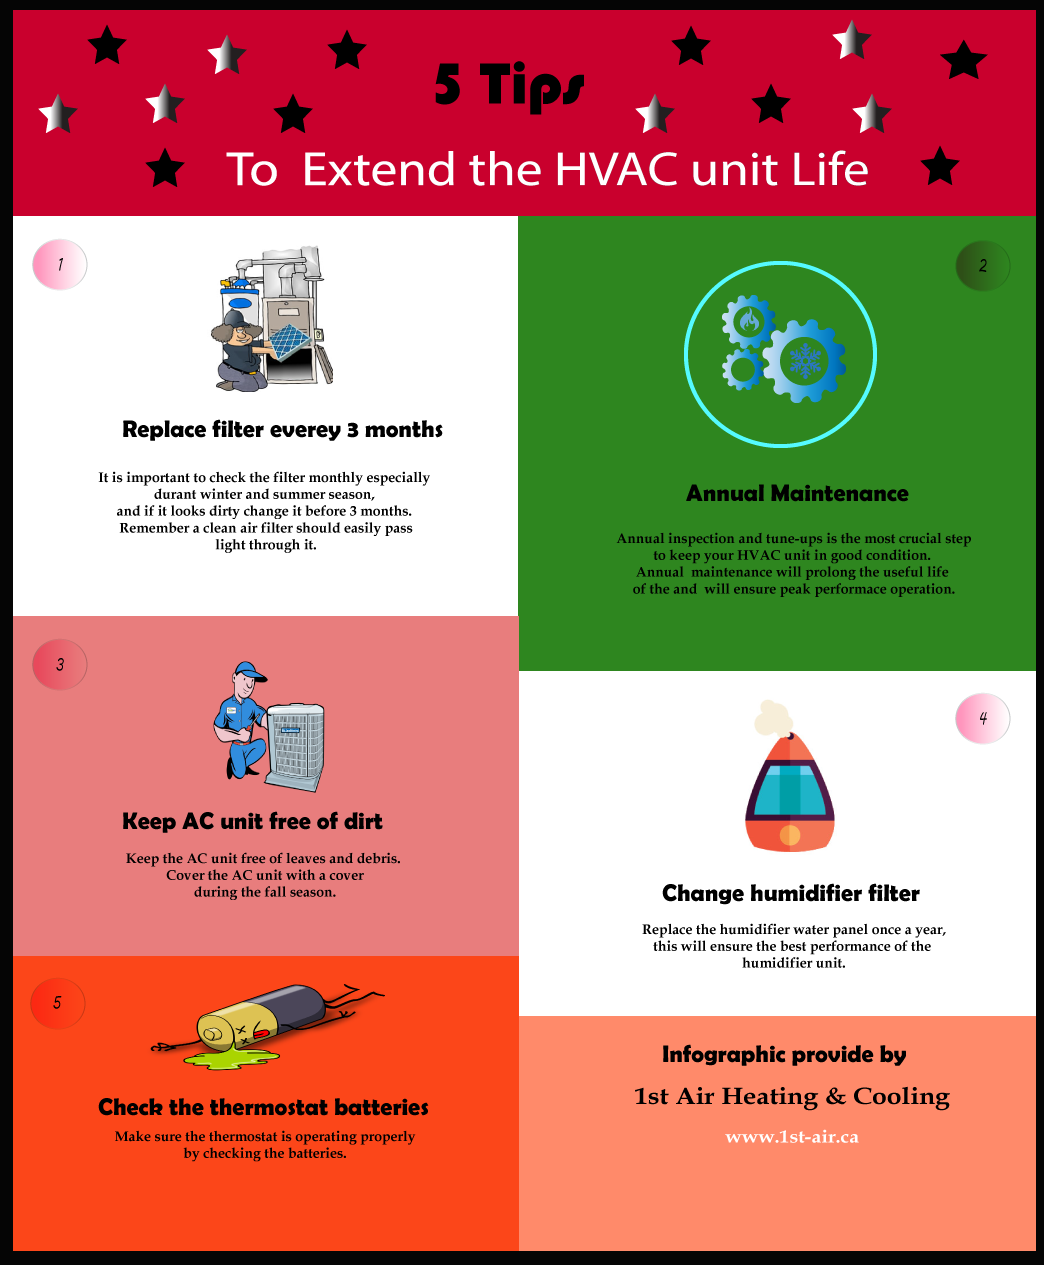 Benefits of a Humidifier in an HVAC System